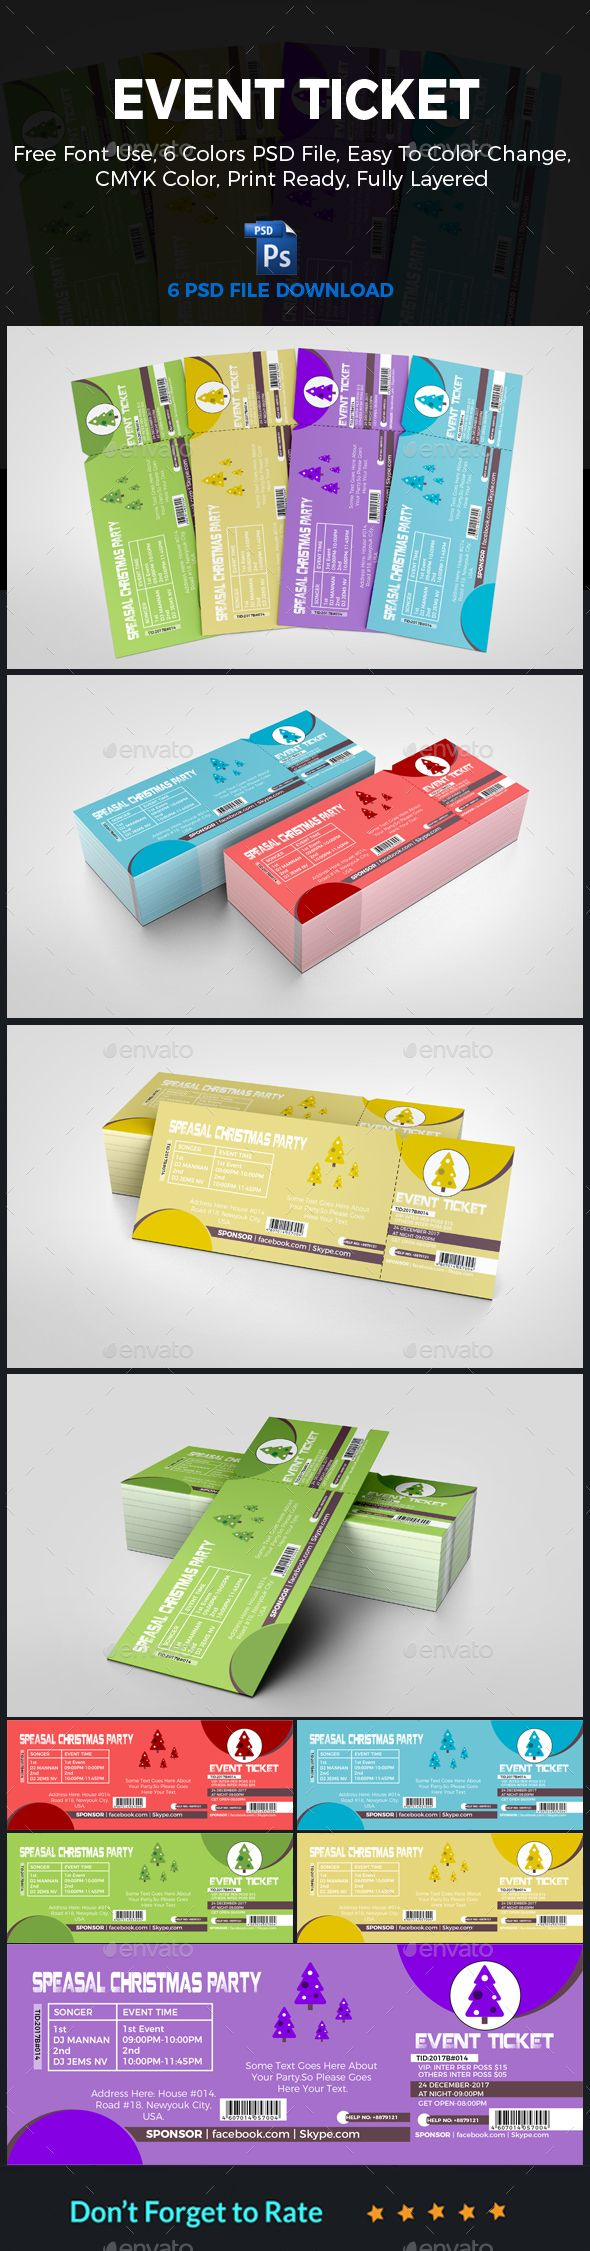 Christmas #Event #Ticket - Clubs & Parties Events Download here: https://graphicriver.net/item/christmas-event-ticket/19589361?ref=alena994